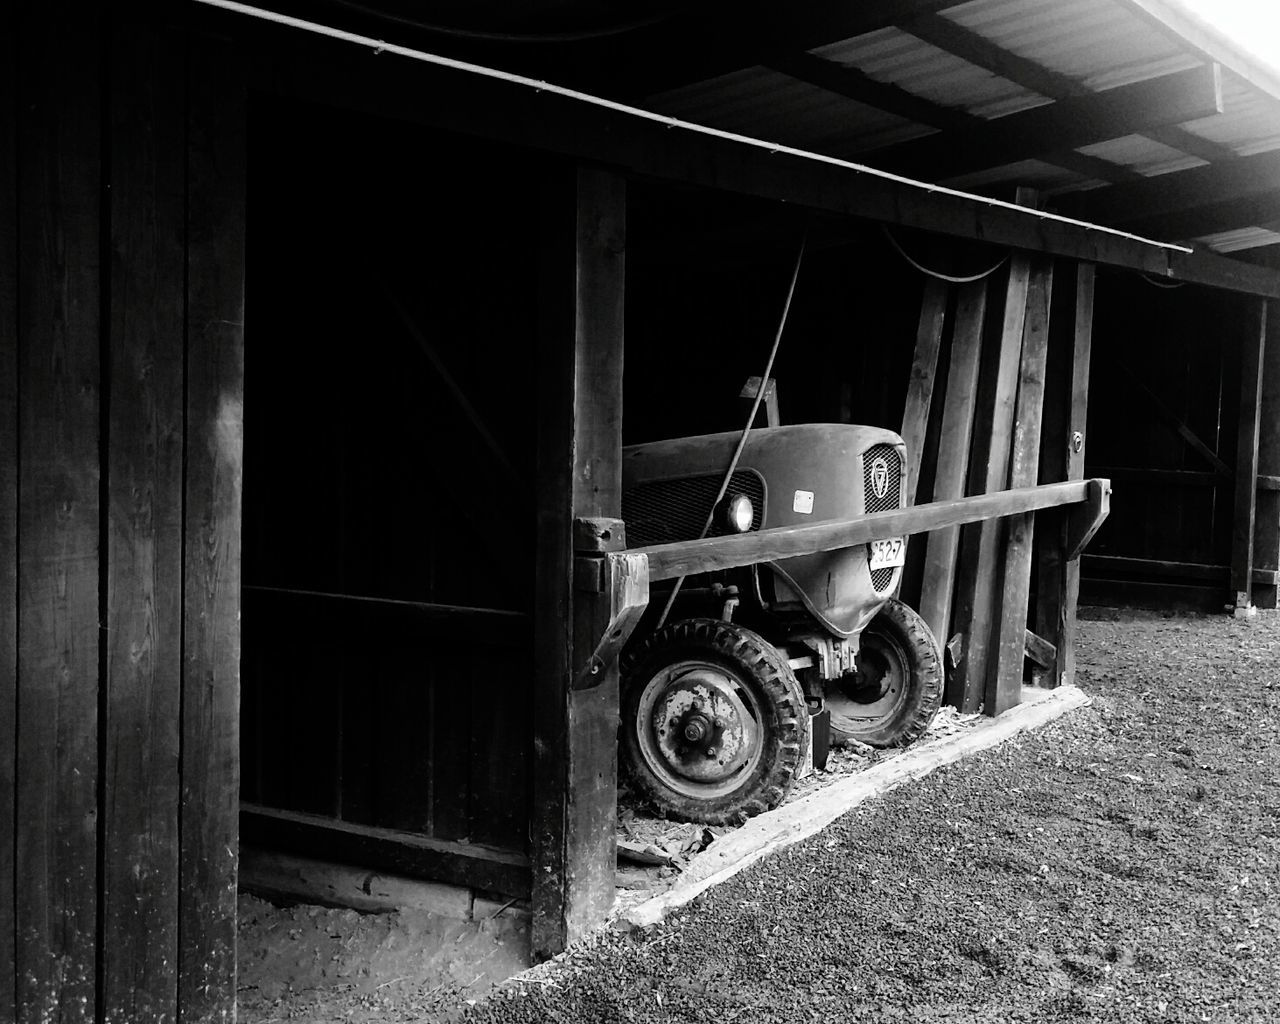 Old Tractors Old Machines Machines Tractors Black & White